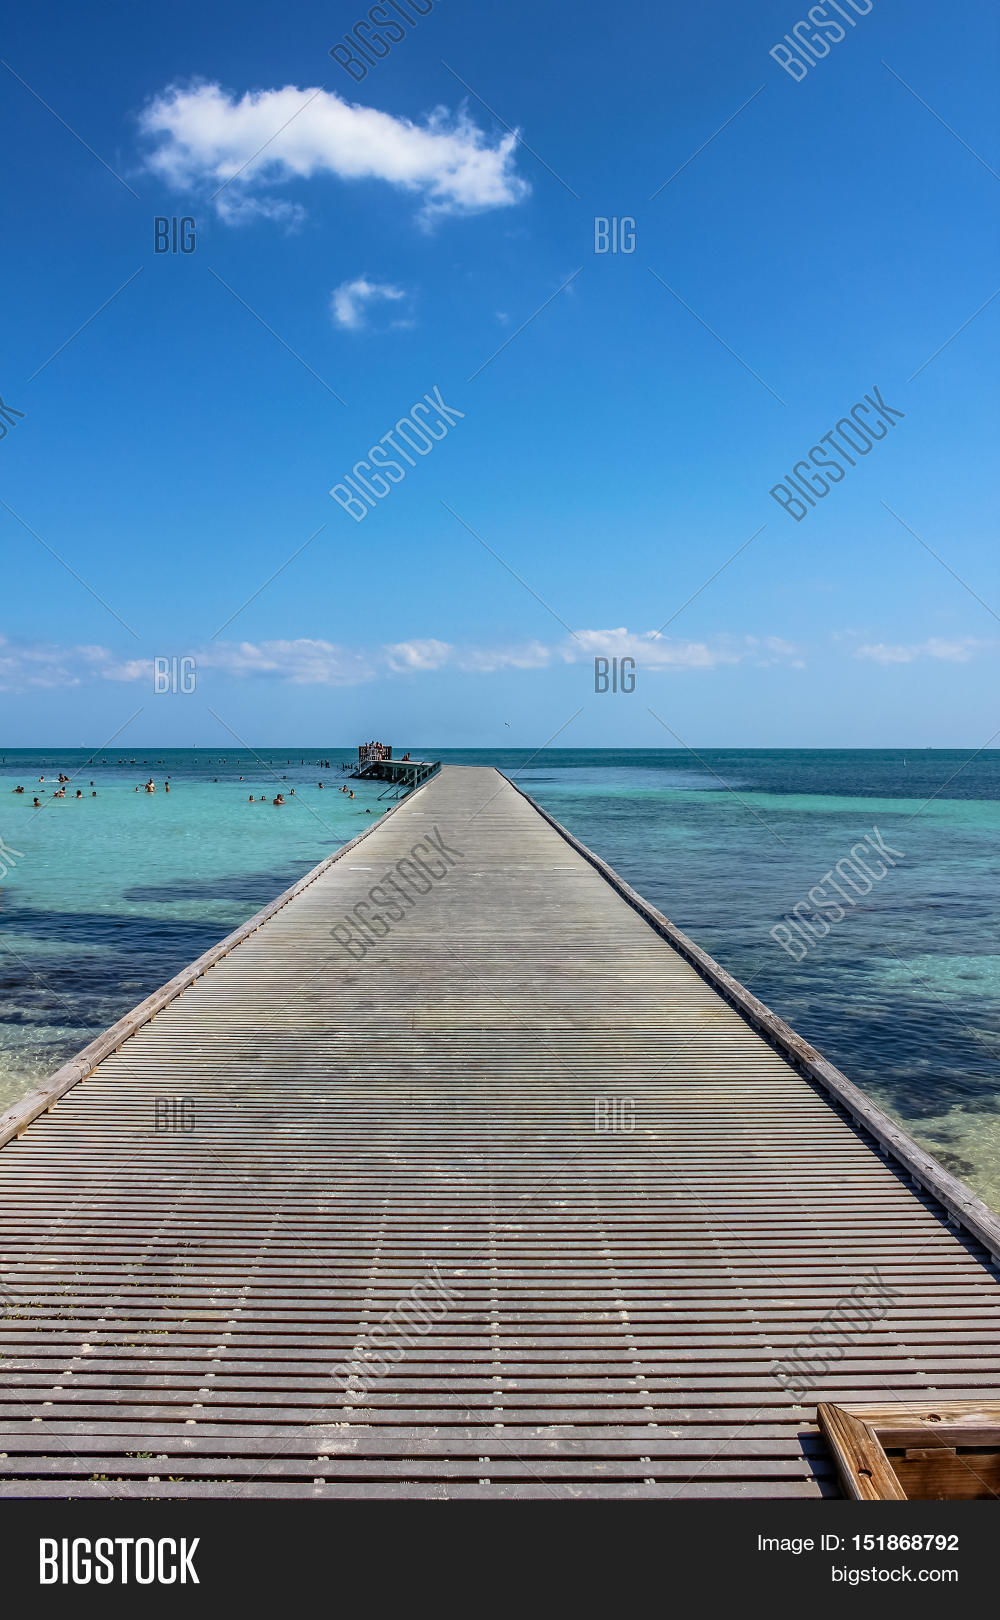 Wooden Pier Higgs Image Photo Free